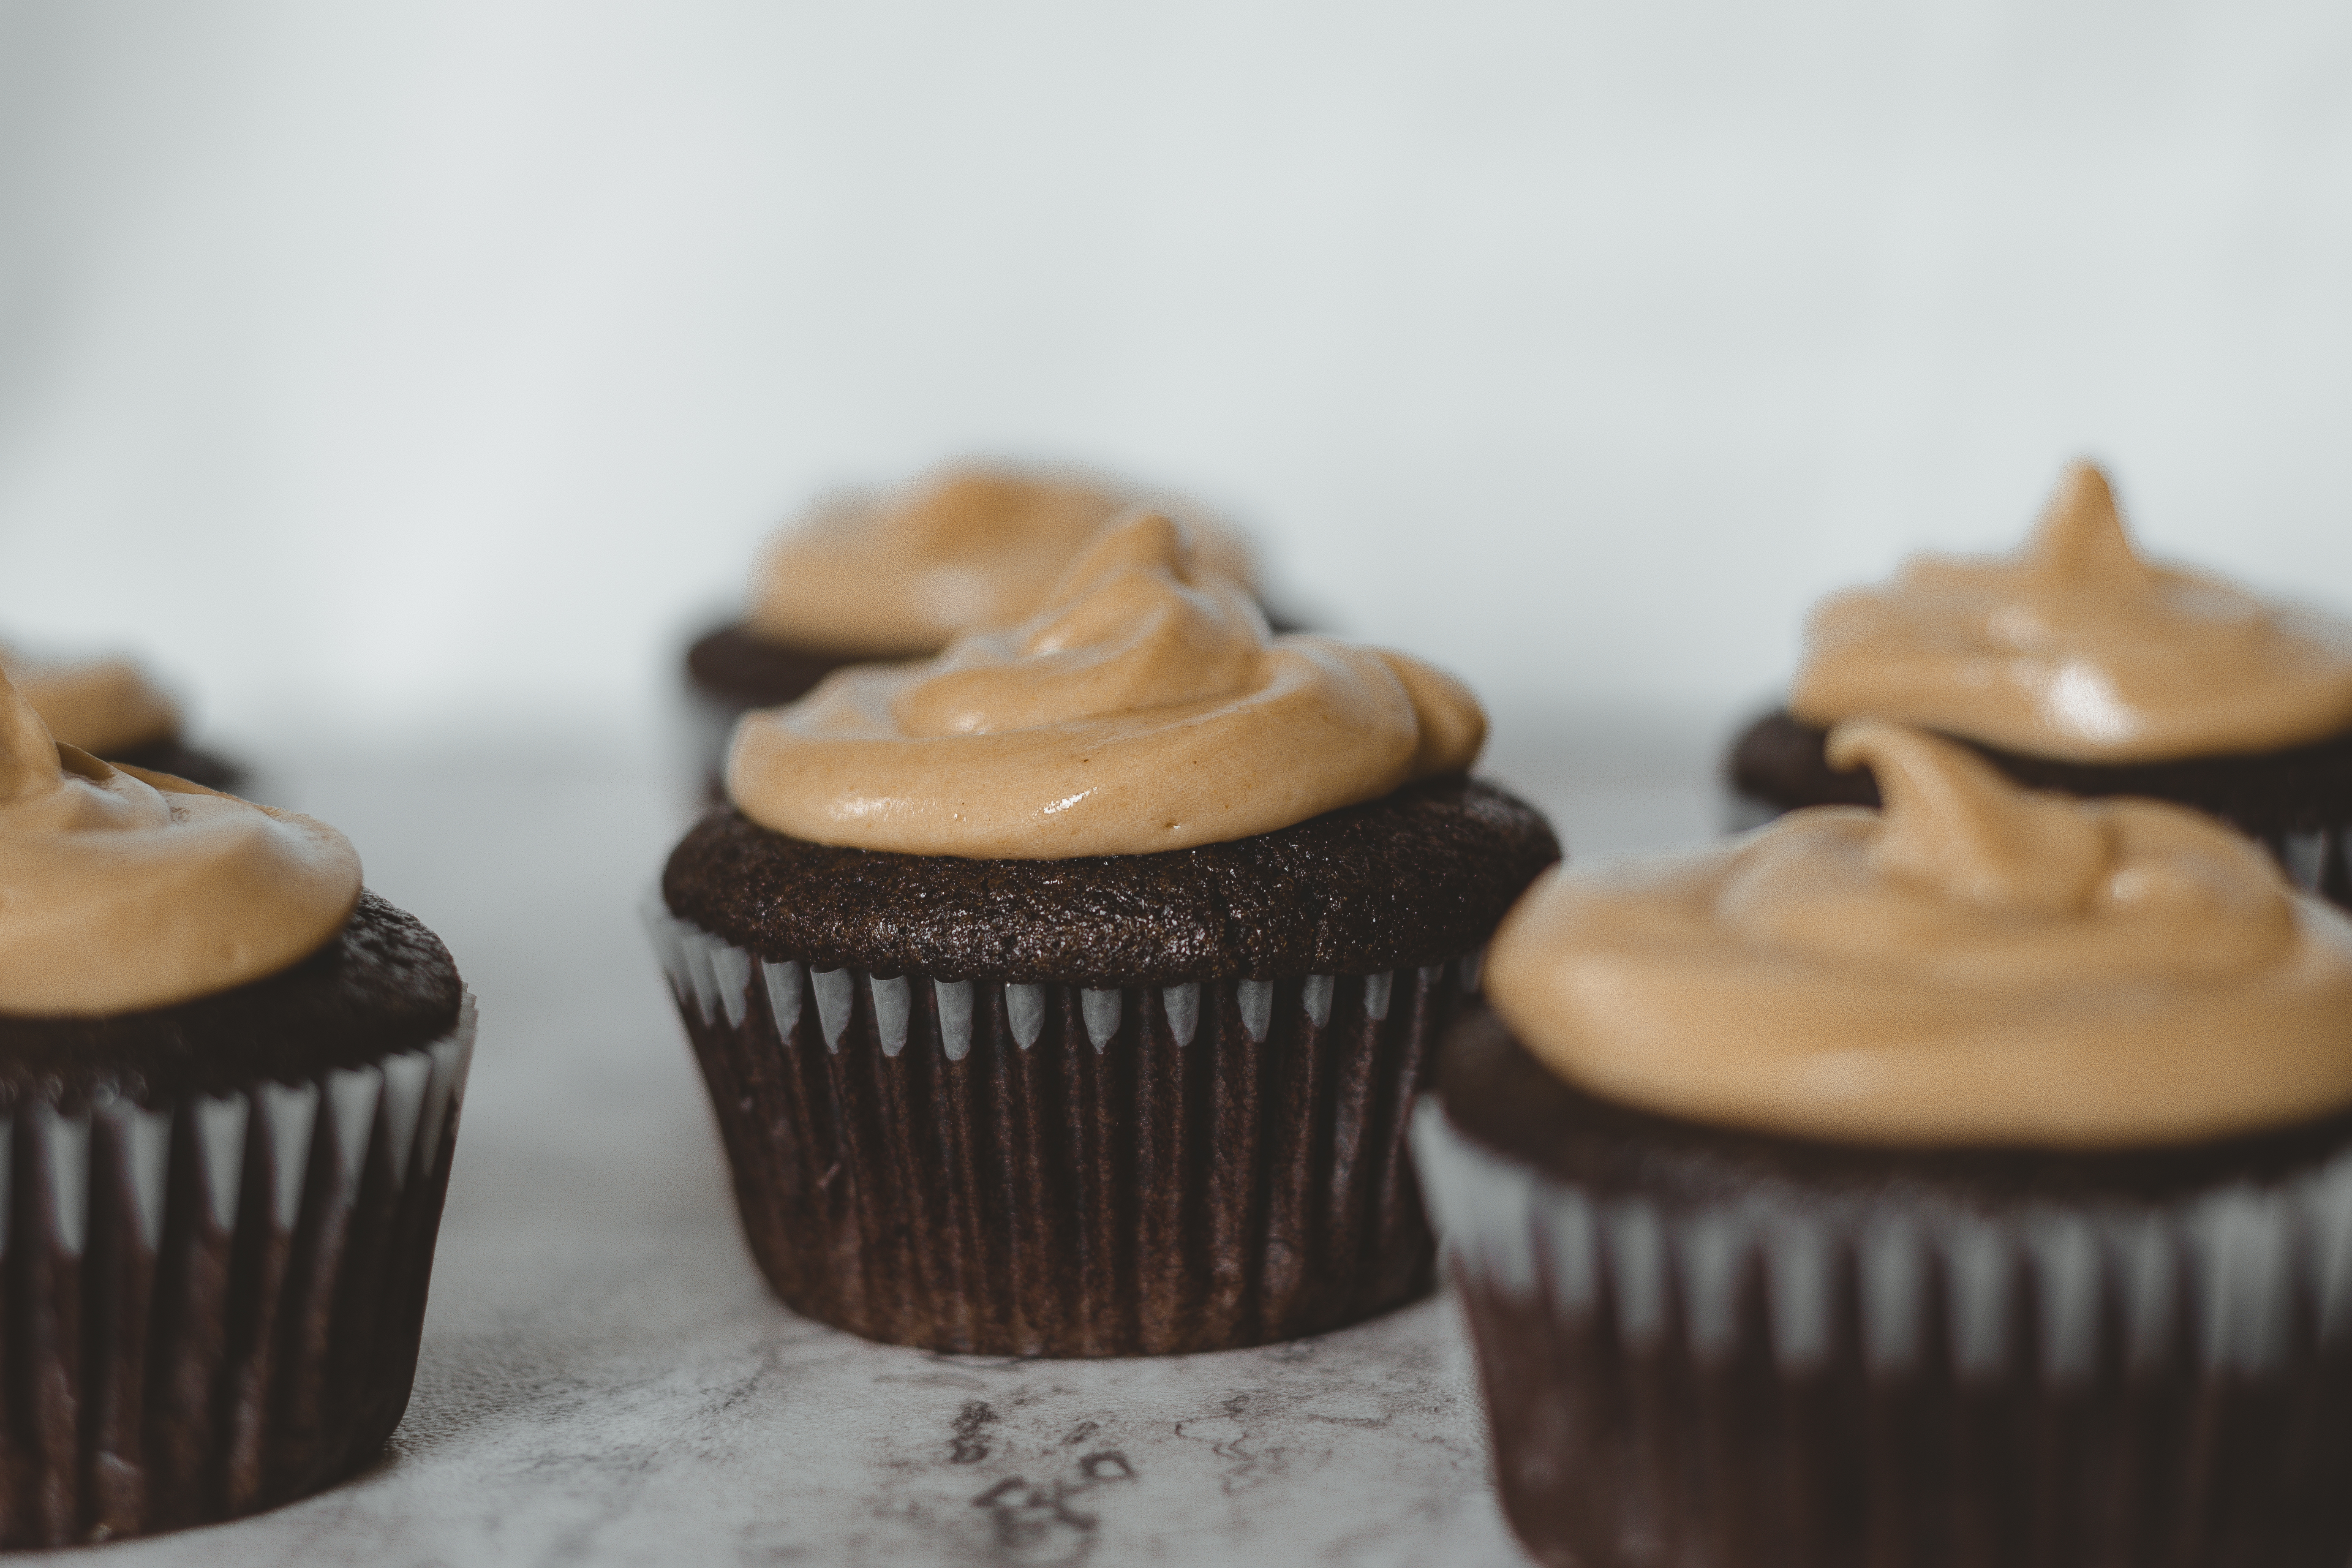 45 degree angled shot of cupcakes on marble countertop.